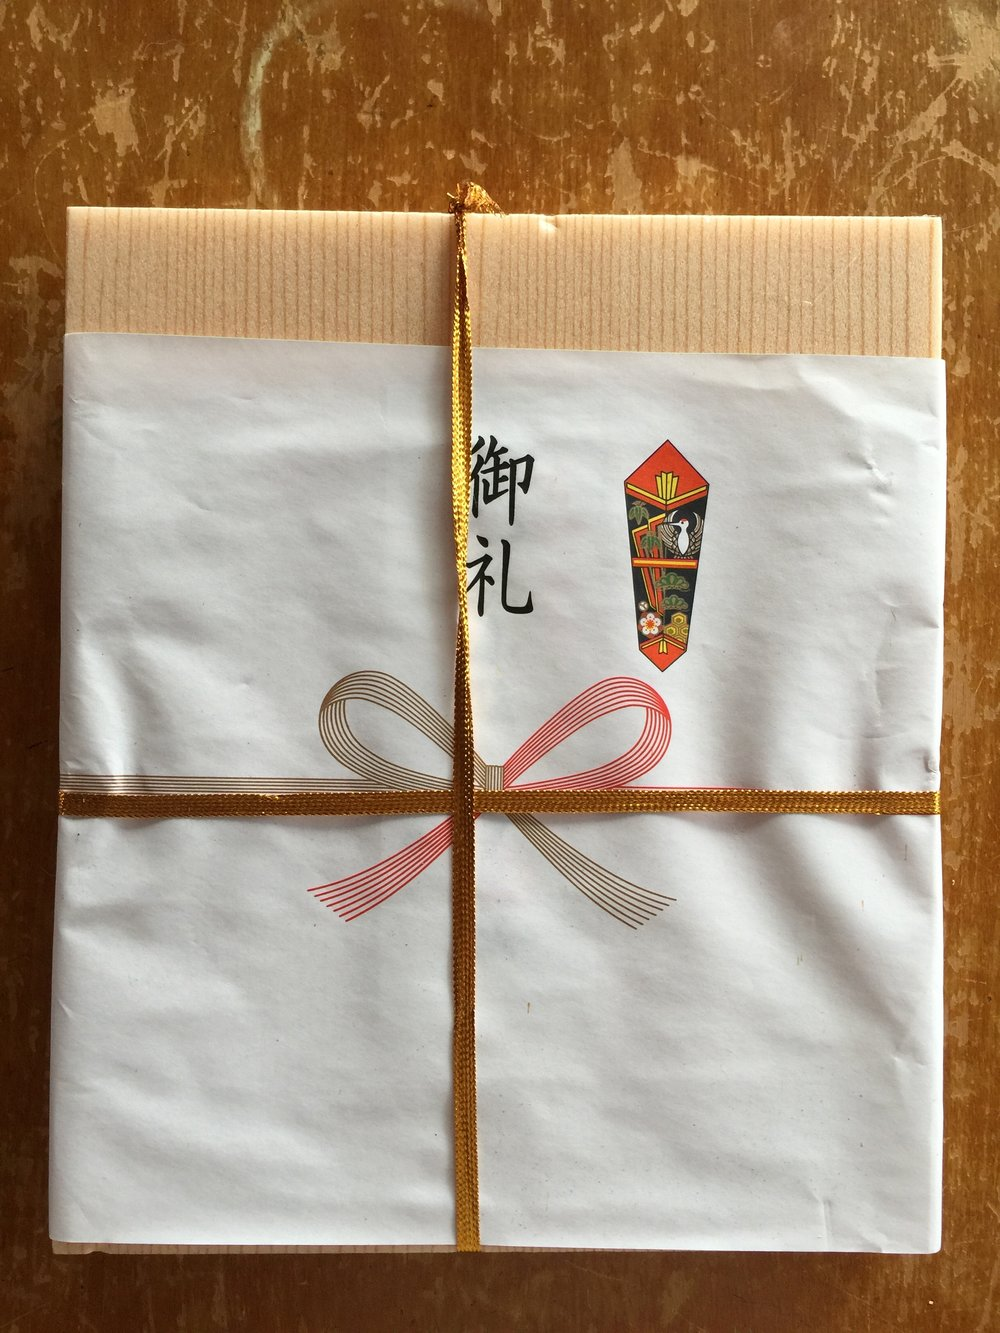 These sweets were sent to us as a 'thank you' from Mr. Shinji Sasaki. I met him while he was here in Hawaii, practicing kendo at Kenshikan while taking English classes here at the University of Hawaii. His story is an interesting one. After not doing kendo for a very long time (several decades?), he returned to kendo a few years ago and started training in preparation to take his 6-dan exam. He recently passed his 6-dan exam this past April in Kyoto, at 78 years old. It is an amazing accomplishment. Congratulations to Mr. Sasaki!